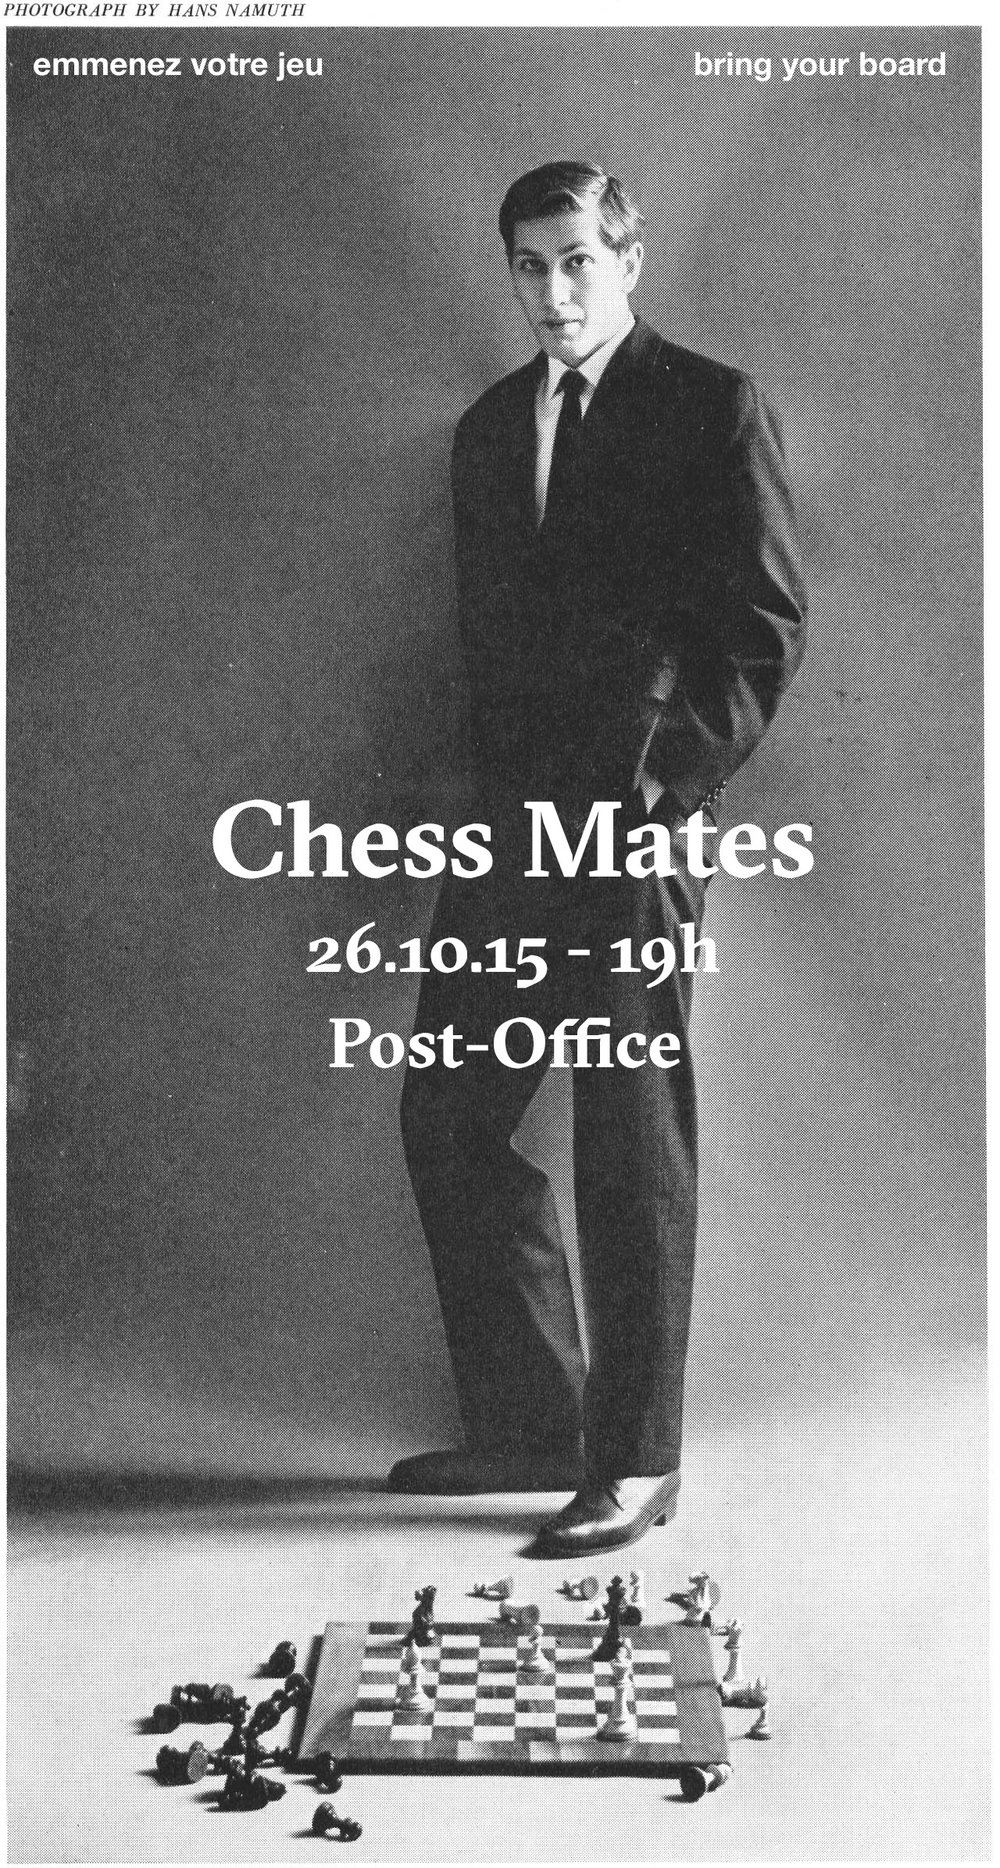 Chess-Mates-Poster-Tournoi.jpg